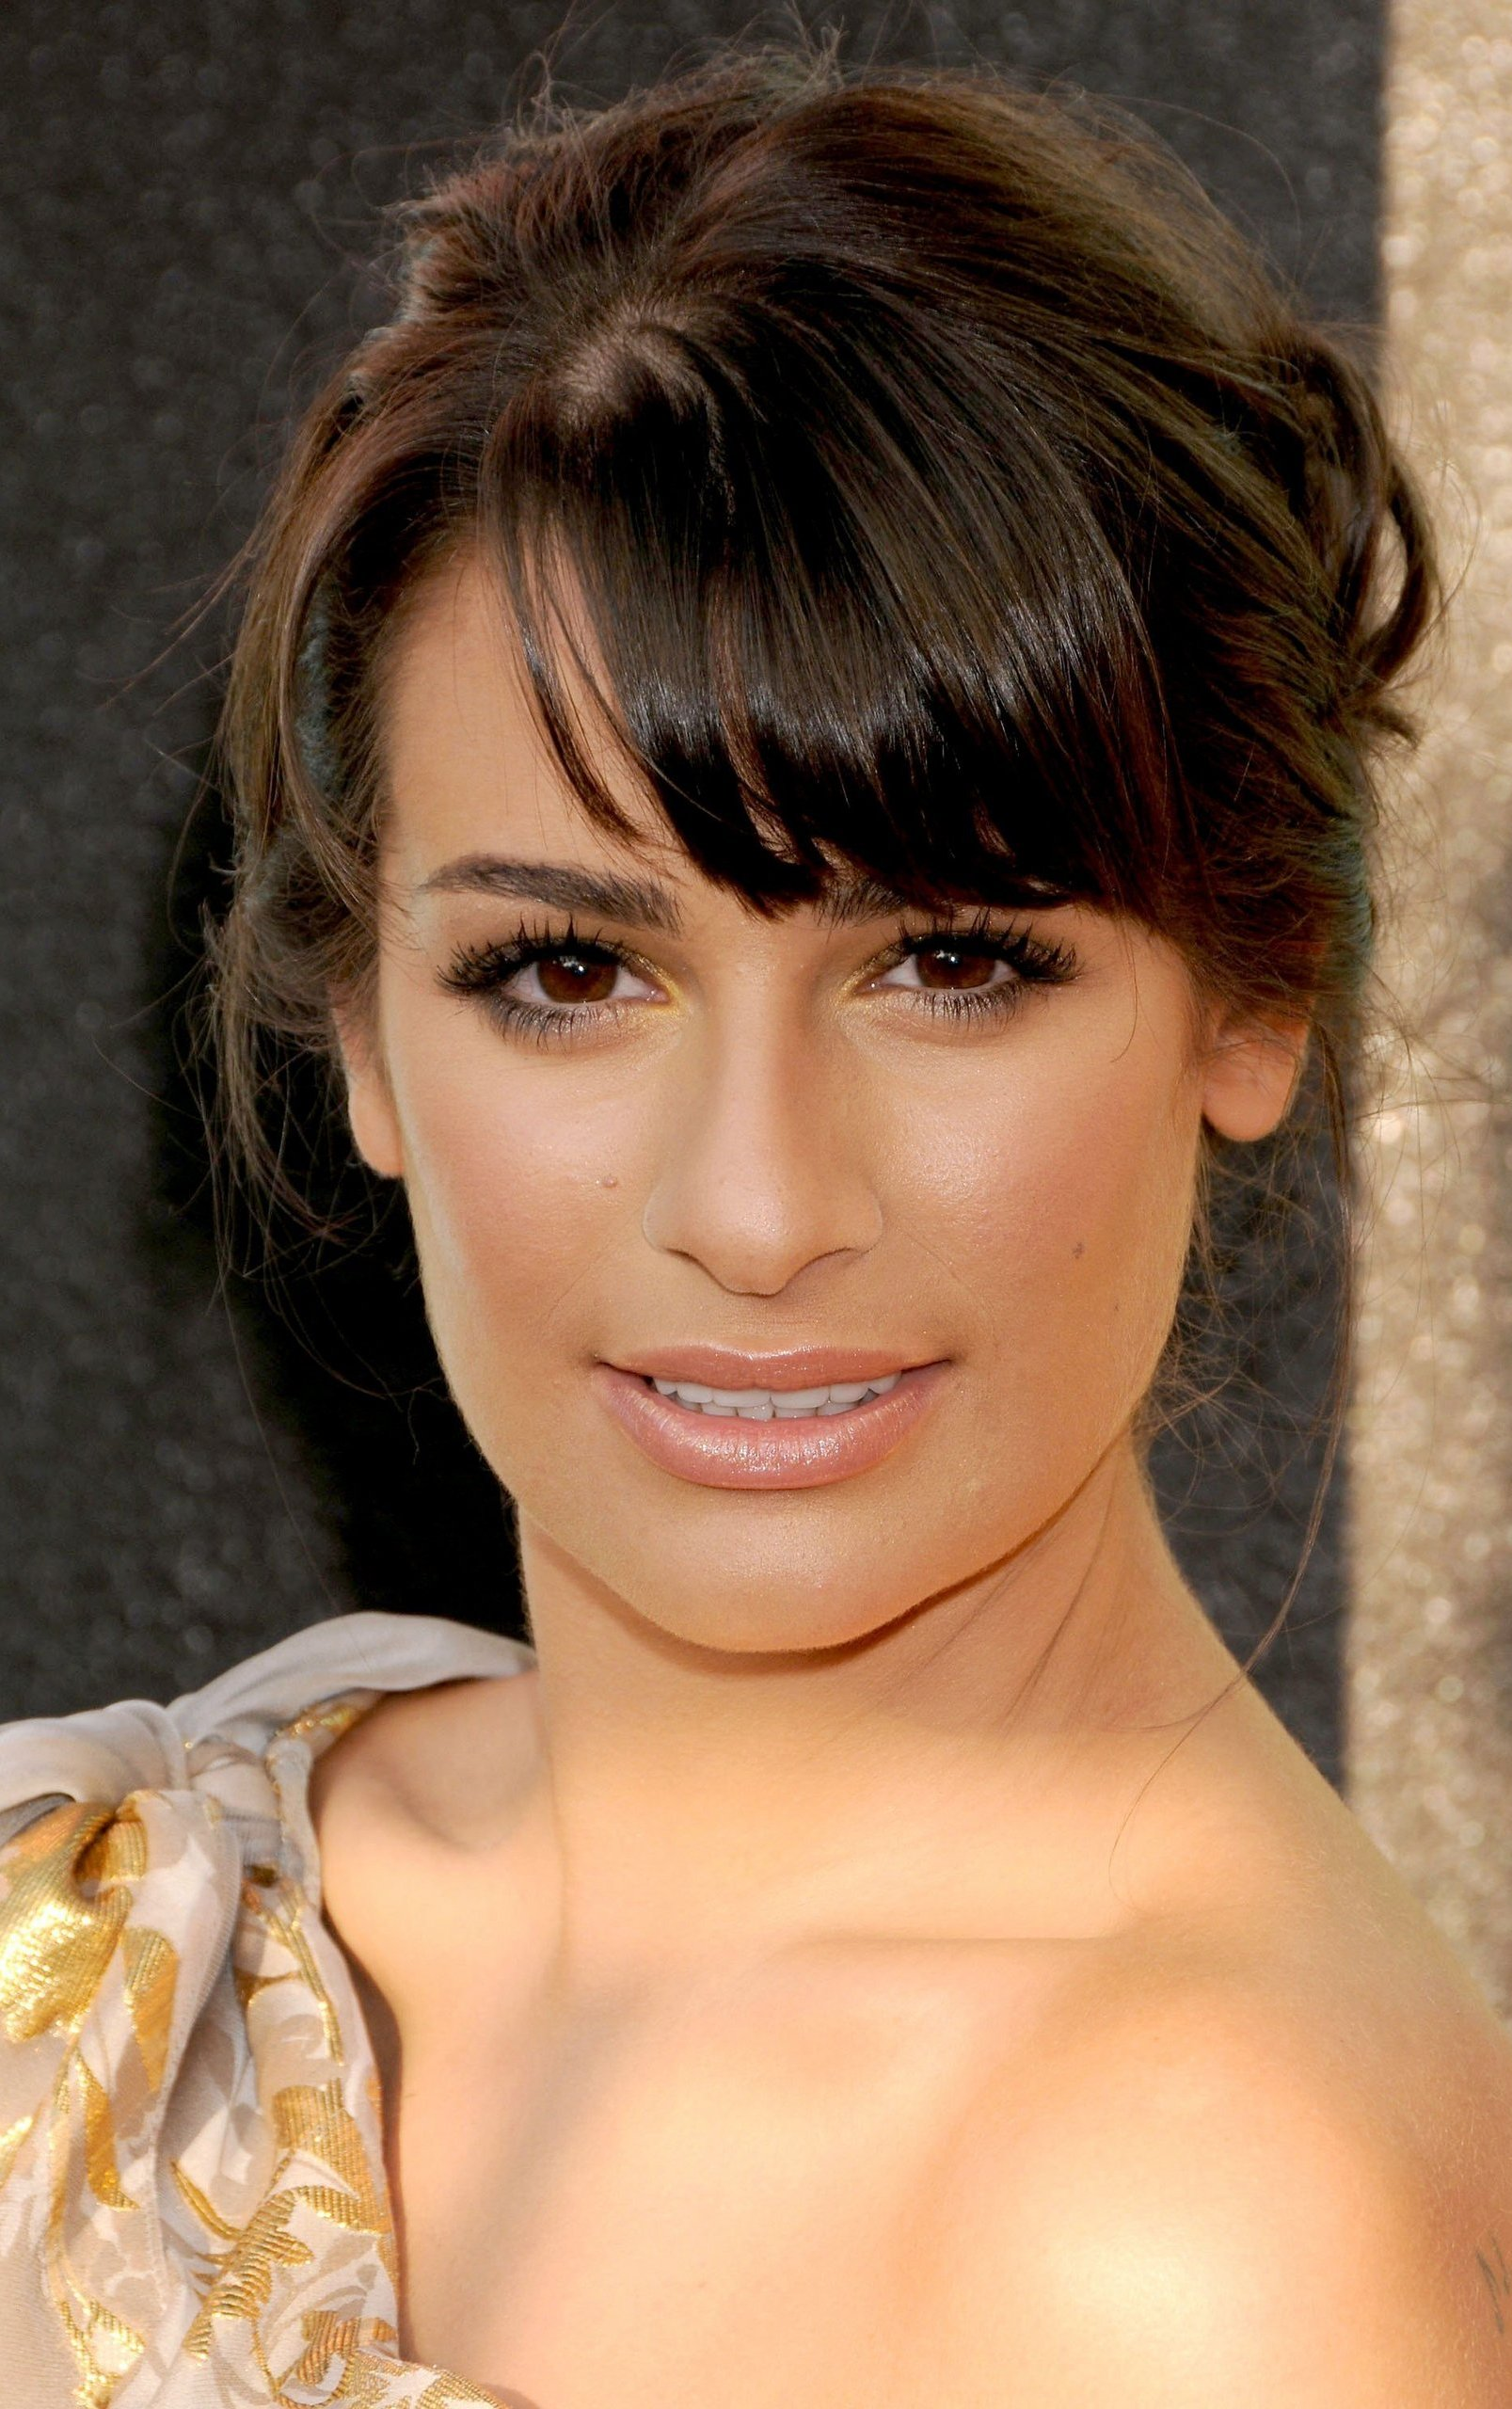 Lea Michele Bra Size, Age, Weight, Height, Measurements